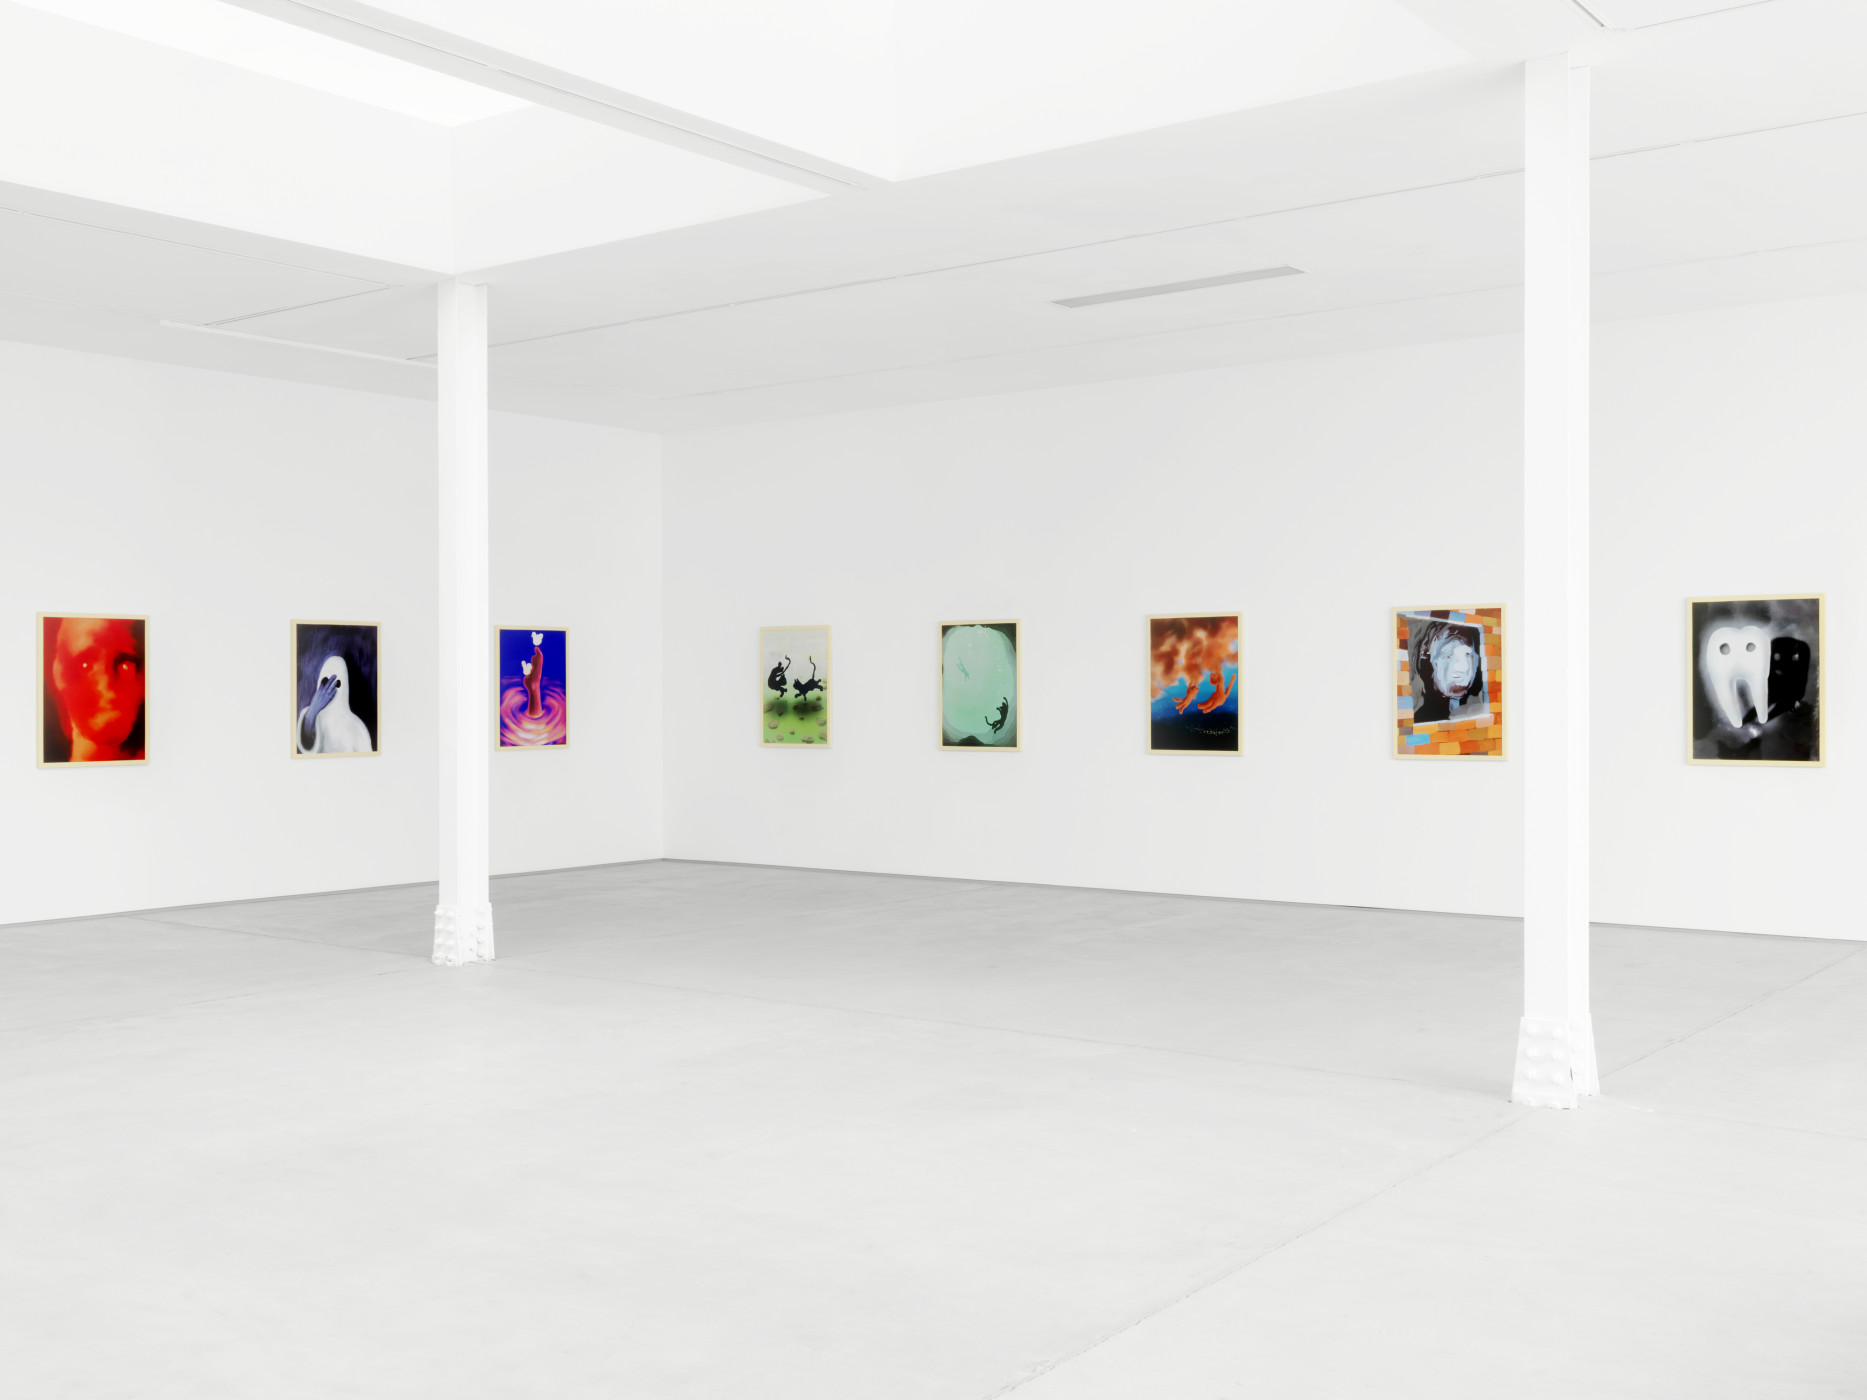 "<div class=""artwork_caption""><p>Installation view, 2018<br />Photo by Stefan Altenburger</p></div>"